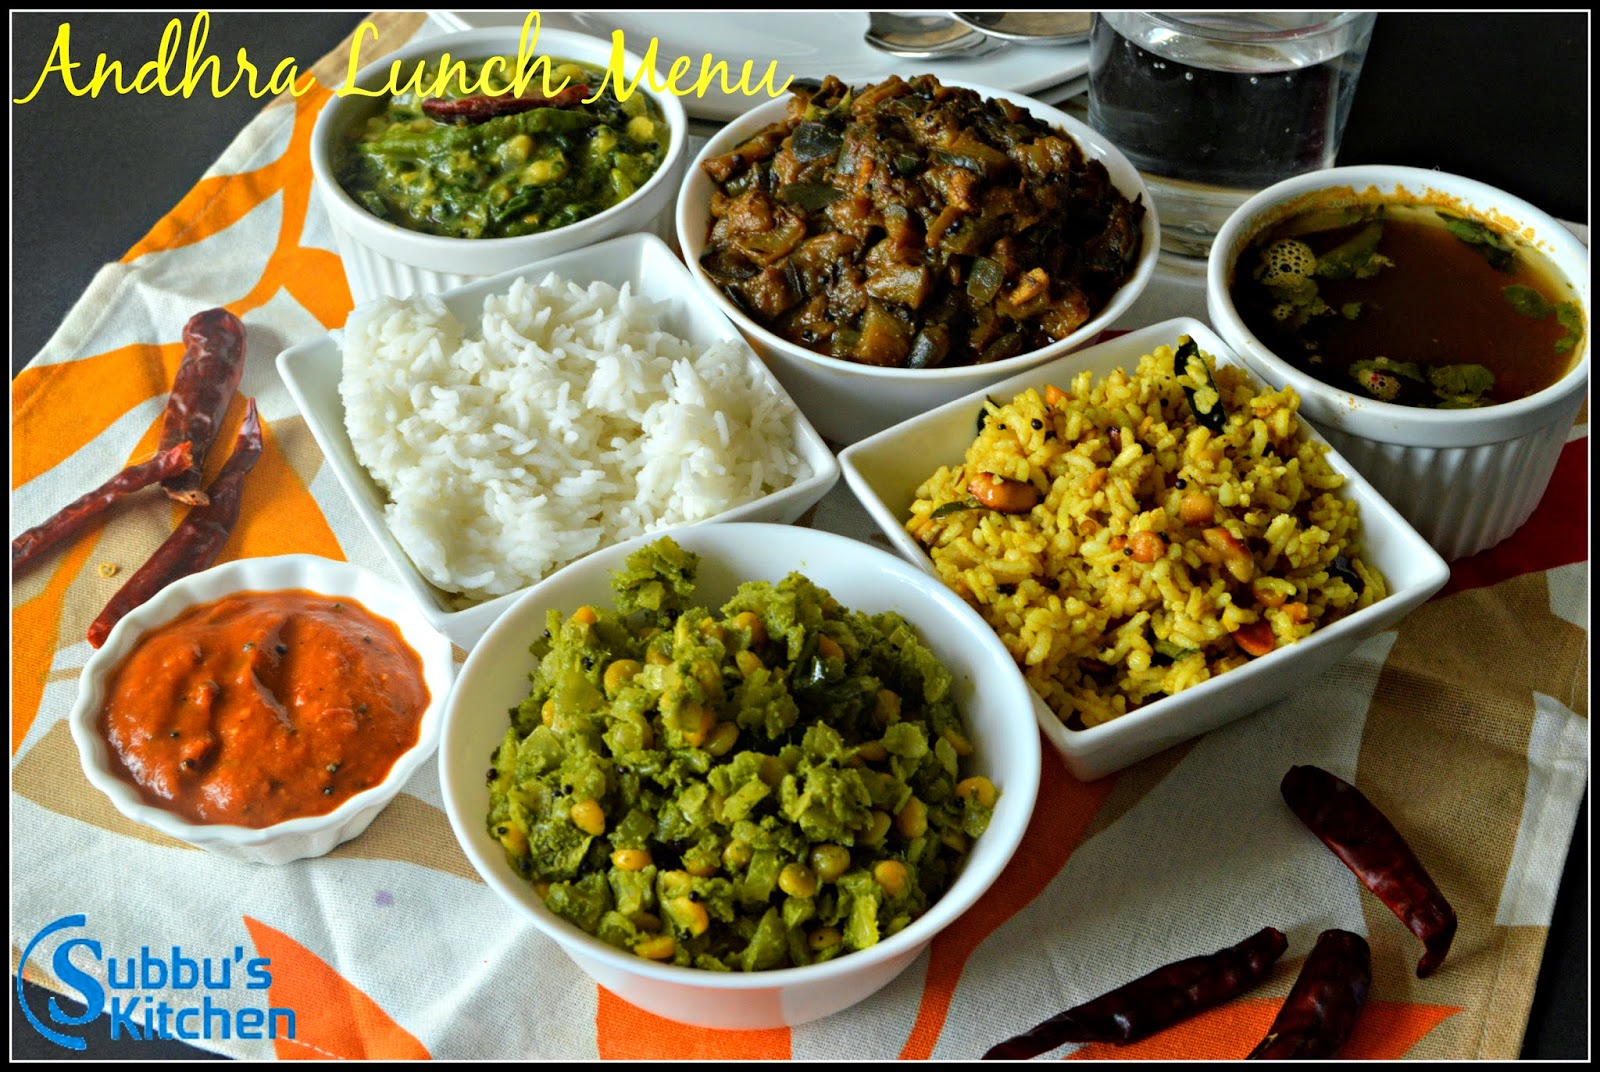 South indian lunch menu 7 andhra lunch menu subbus kitchen south indian lunch menu 7 andhra lunch menu forumfinder Choice Image